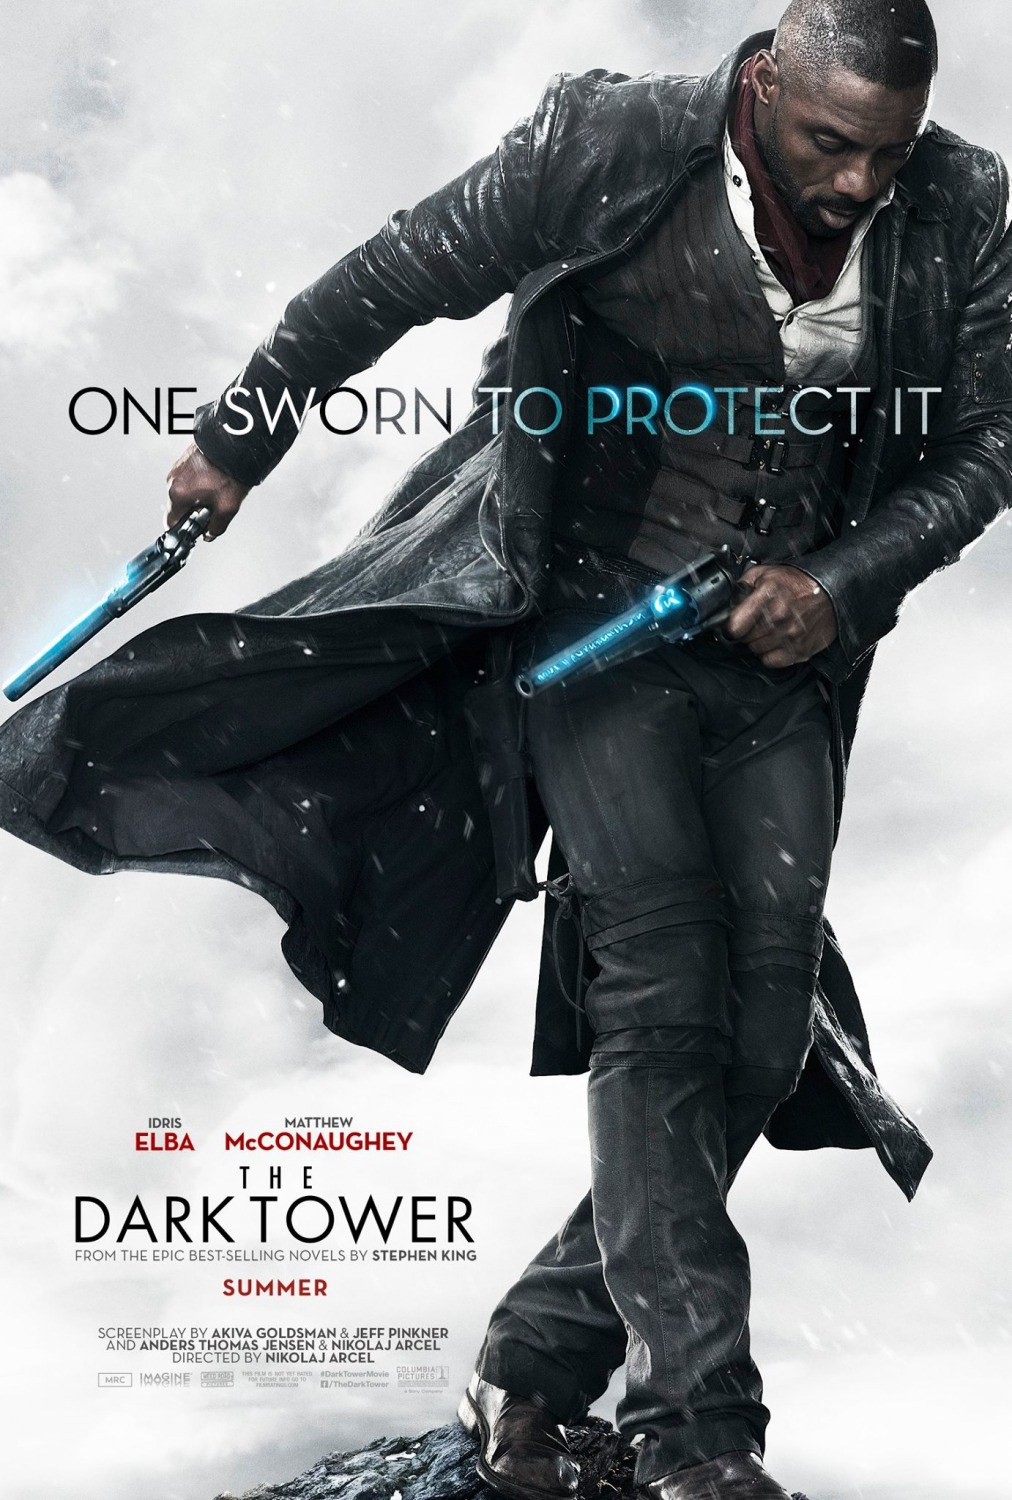 Extra Large Movie Poster Image for The Dark Tower (#2 of 3)